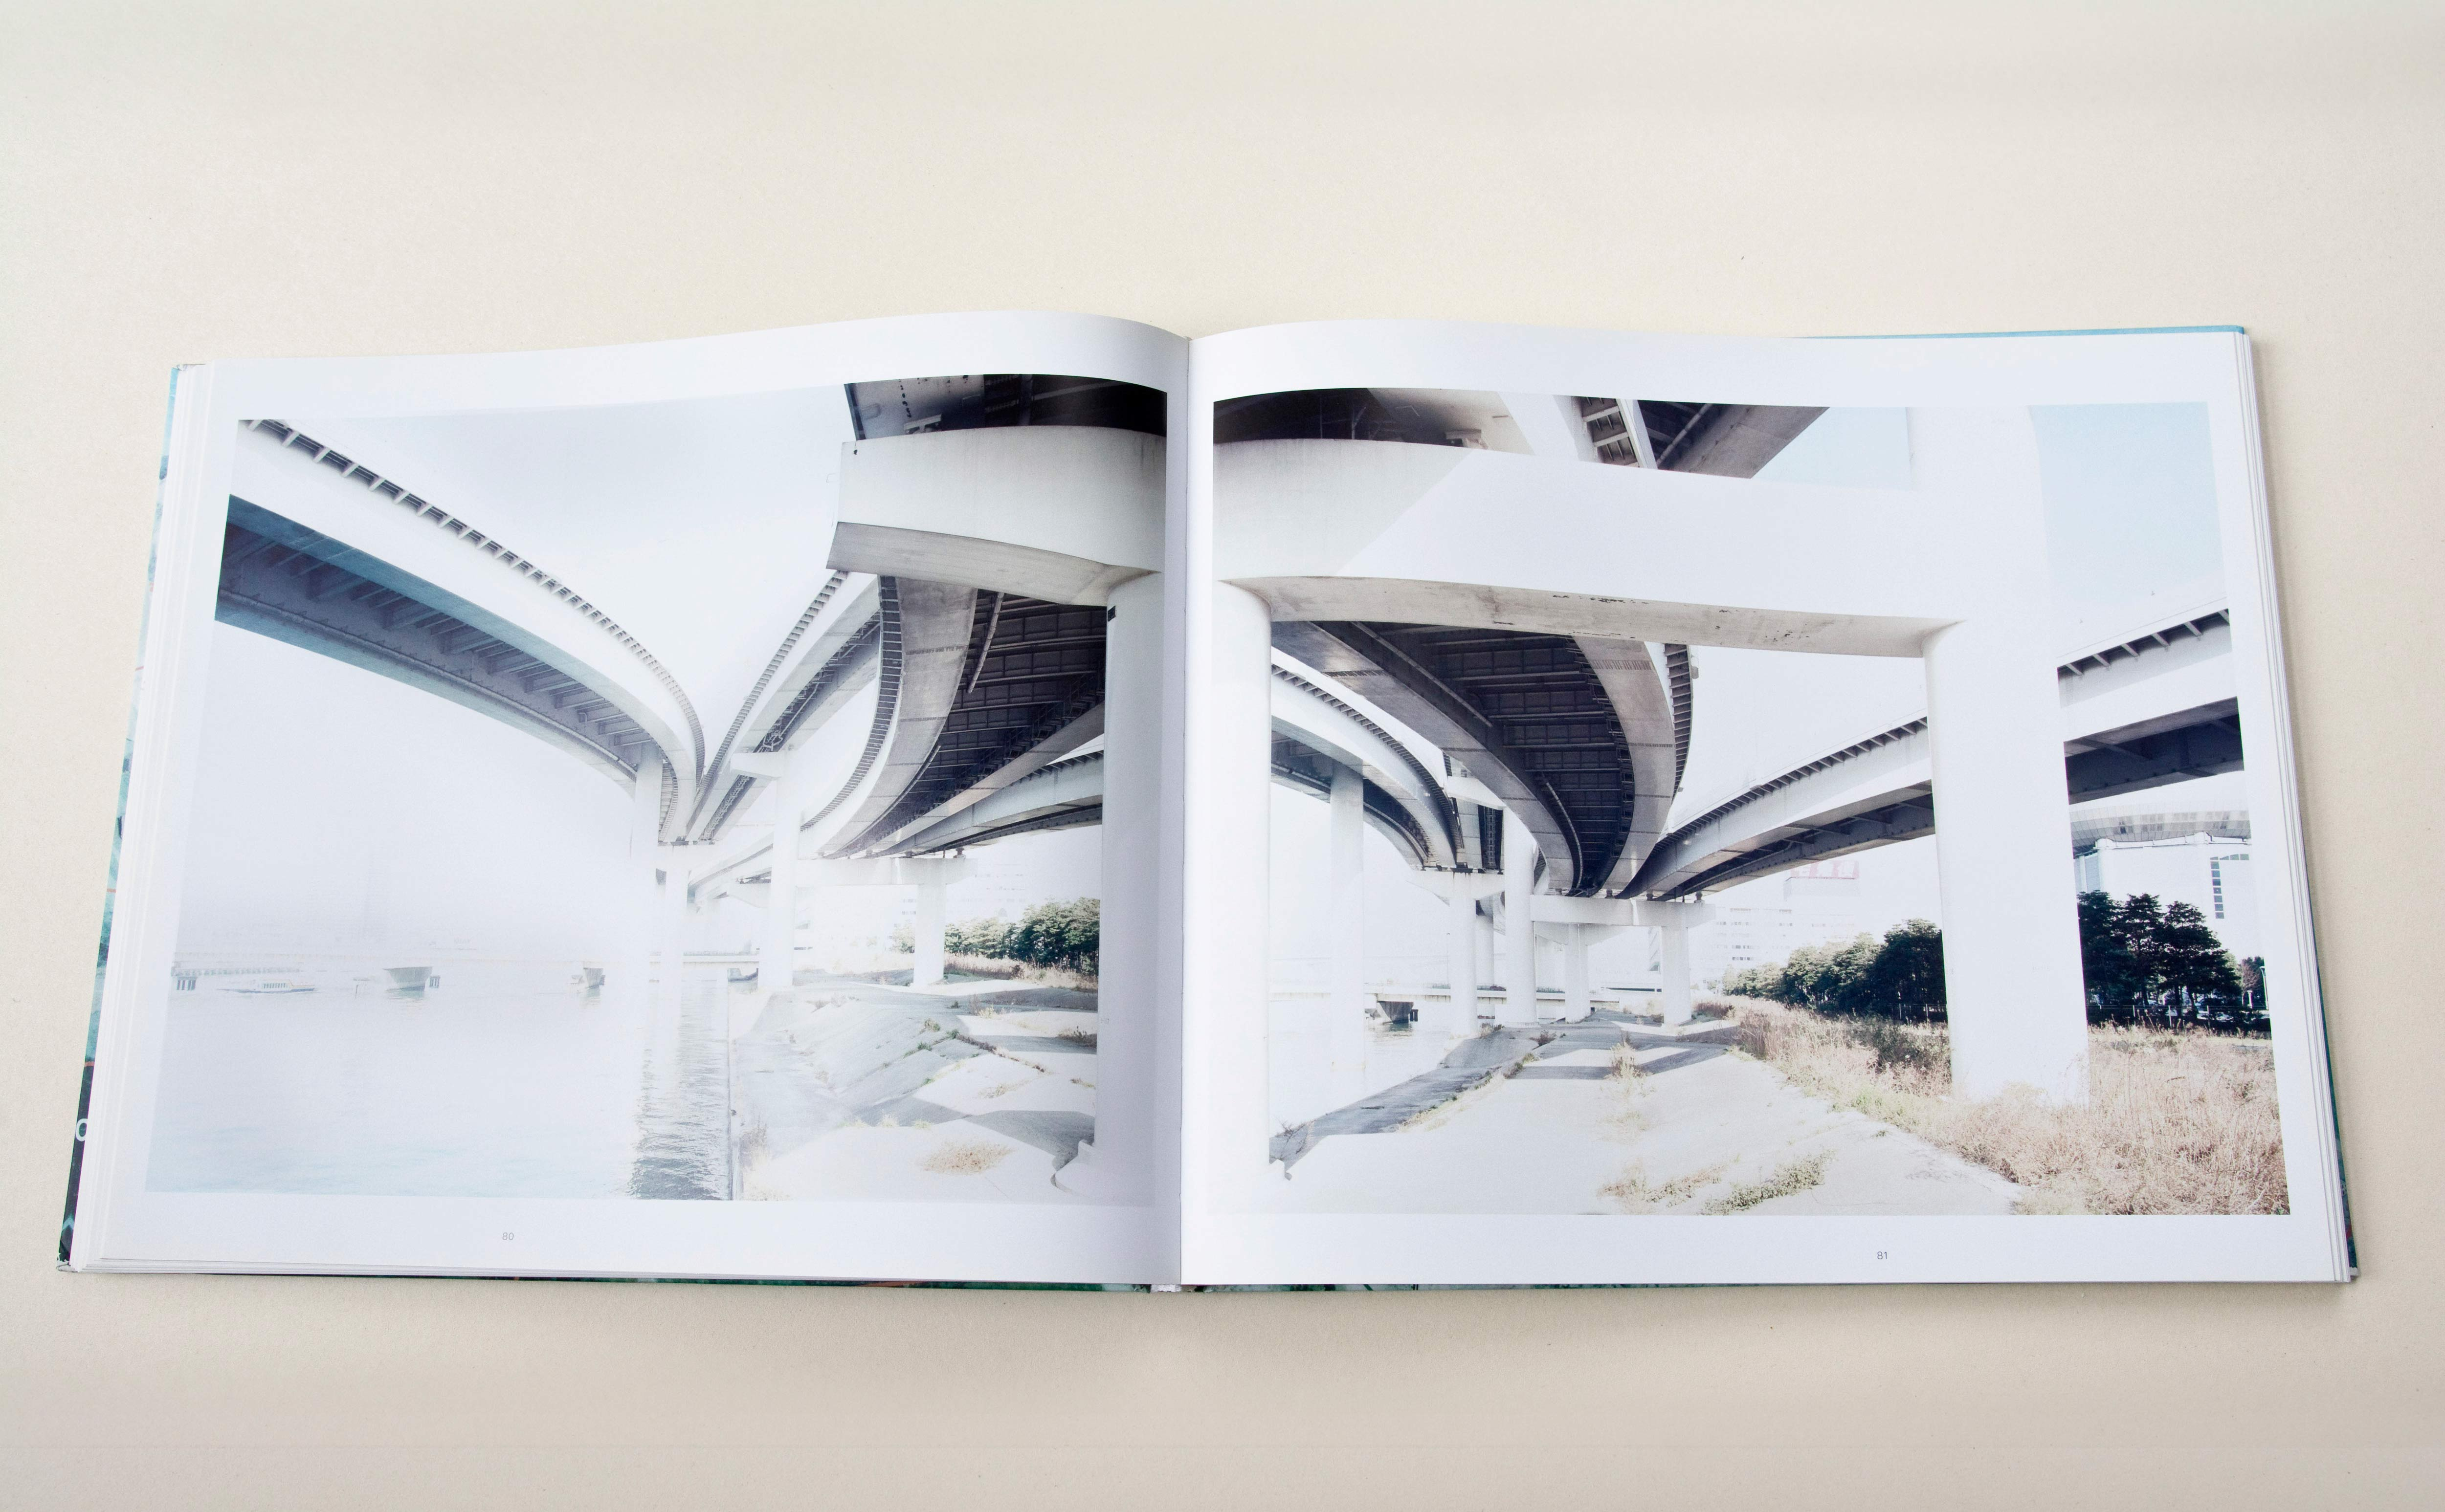 Double page. Large photo with white space around on each page. Left: Under the bridegs of highway junction beside river. Right: Shot from different angle at same location.